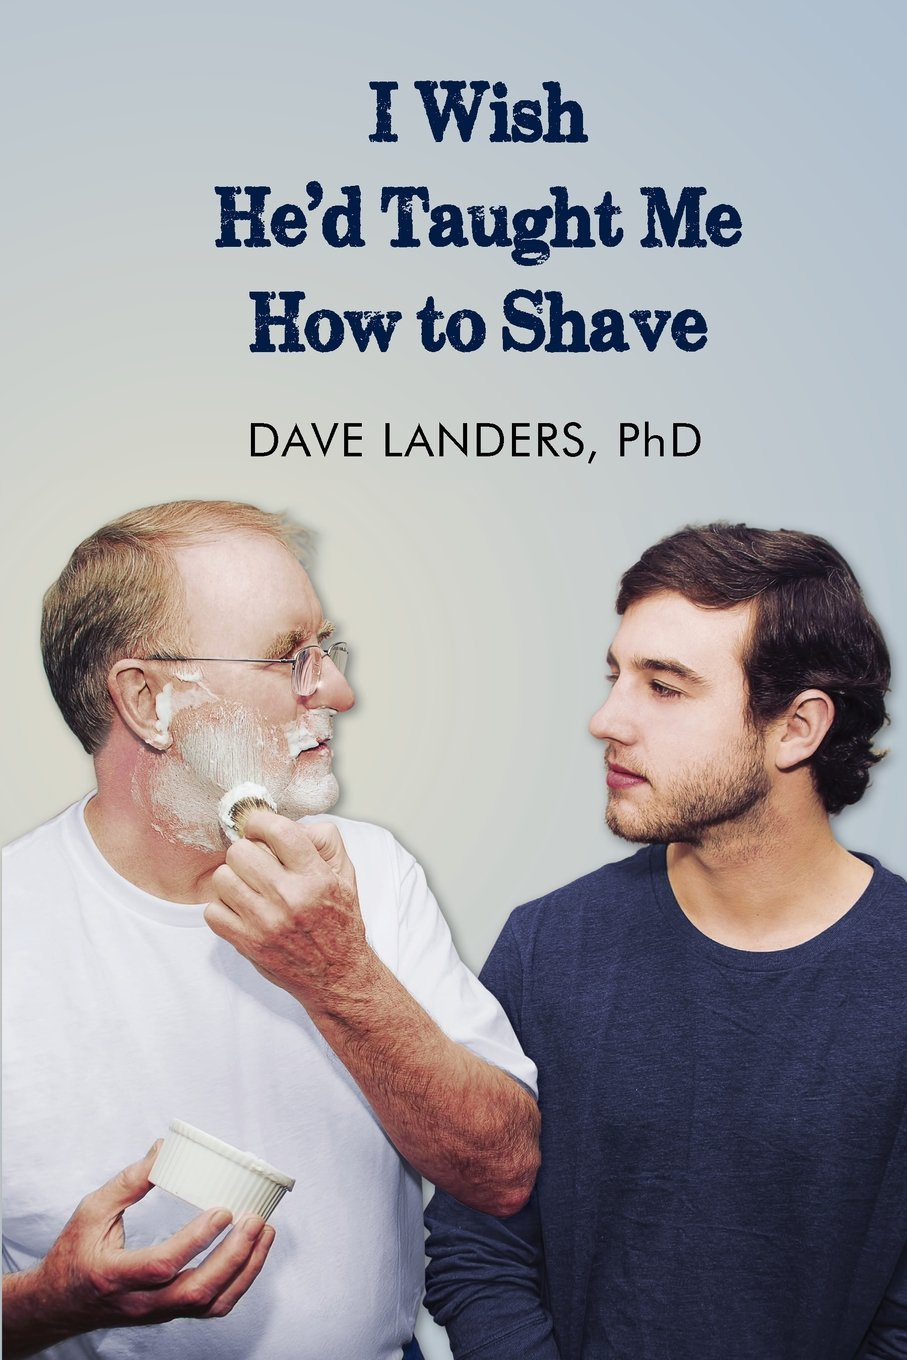 Wish Hed Taught How Shave product image